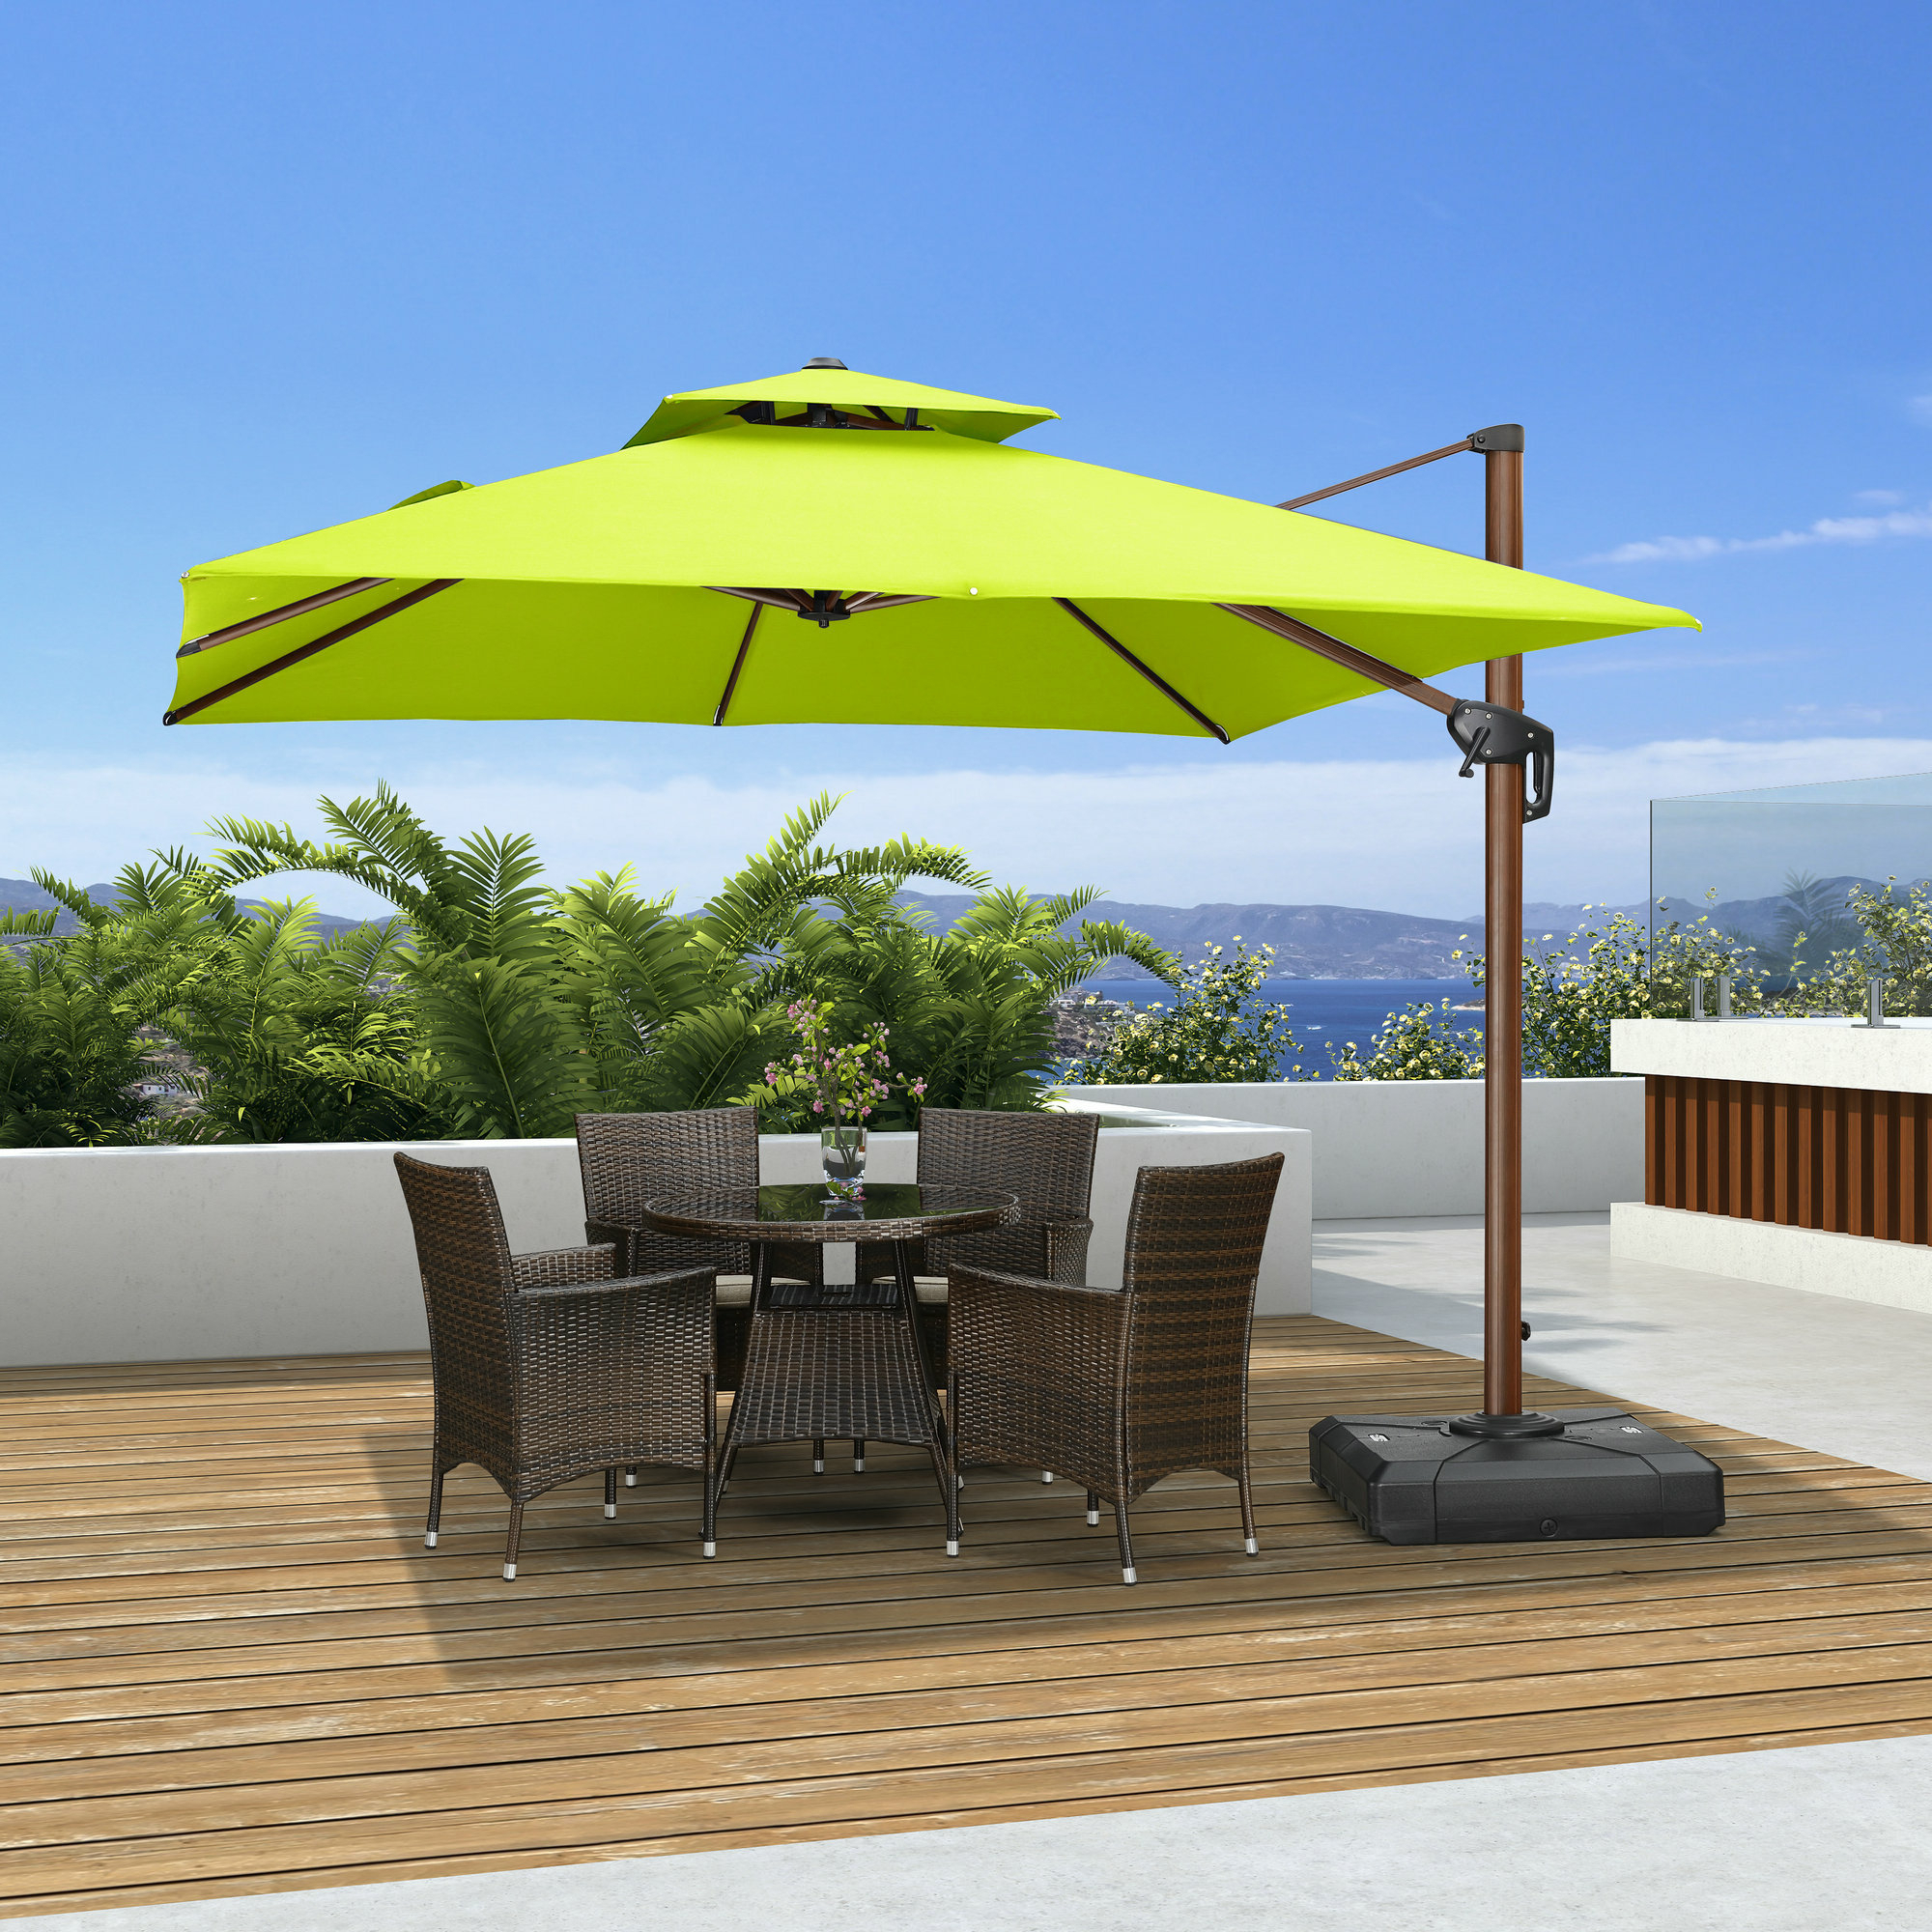 Famous Waddell 10' Square Cantilever Umbrella Inside Maidenhead Cantilever Umbrellas (View 18 of 20)